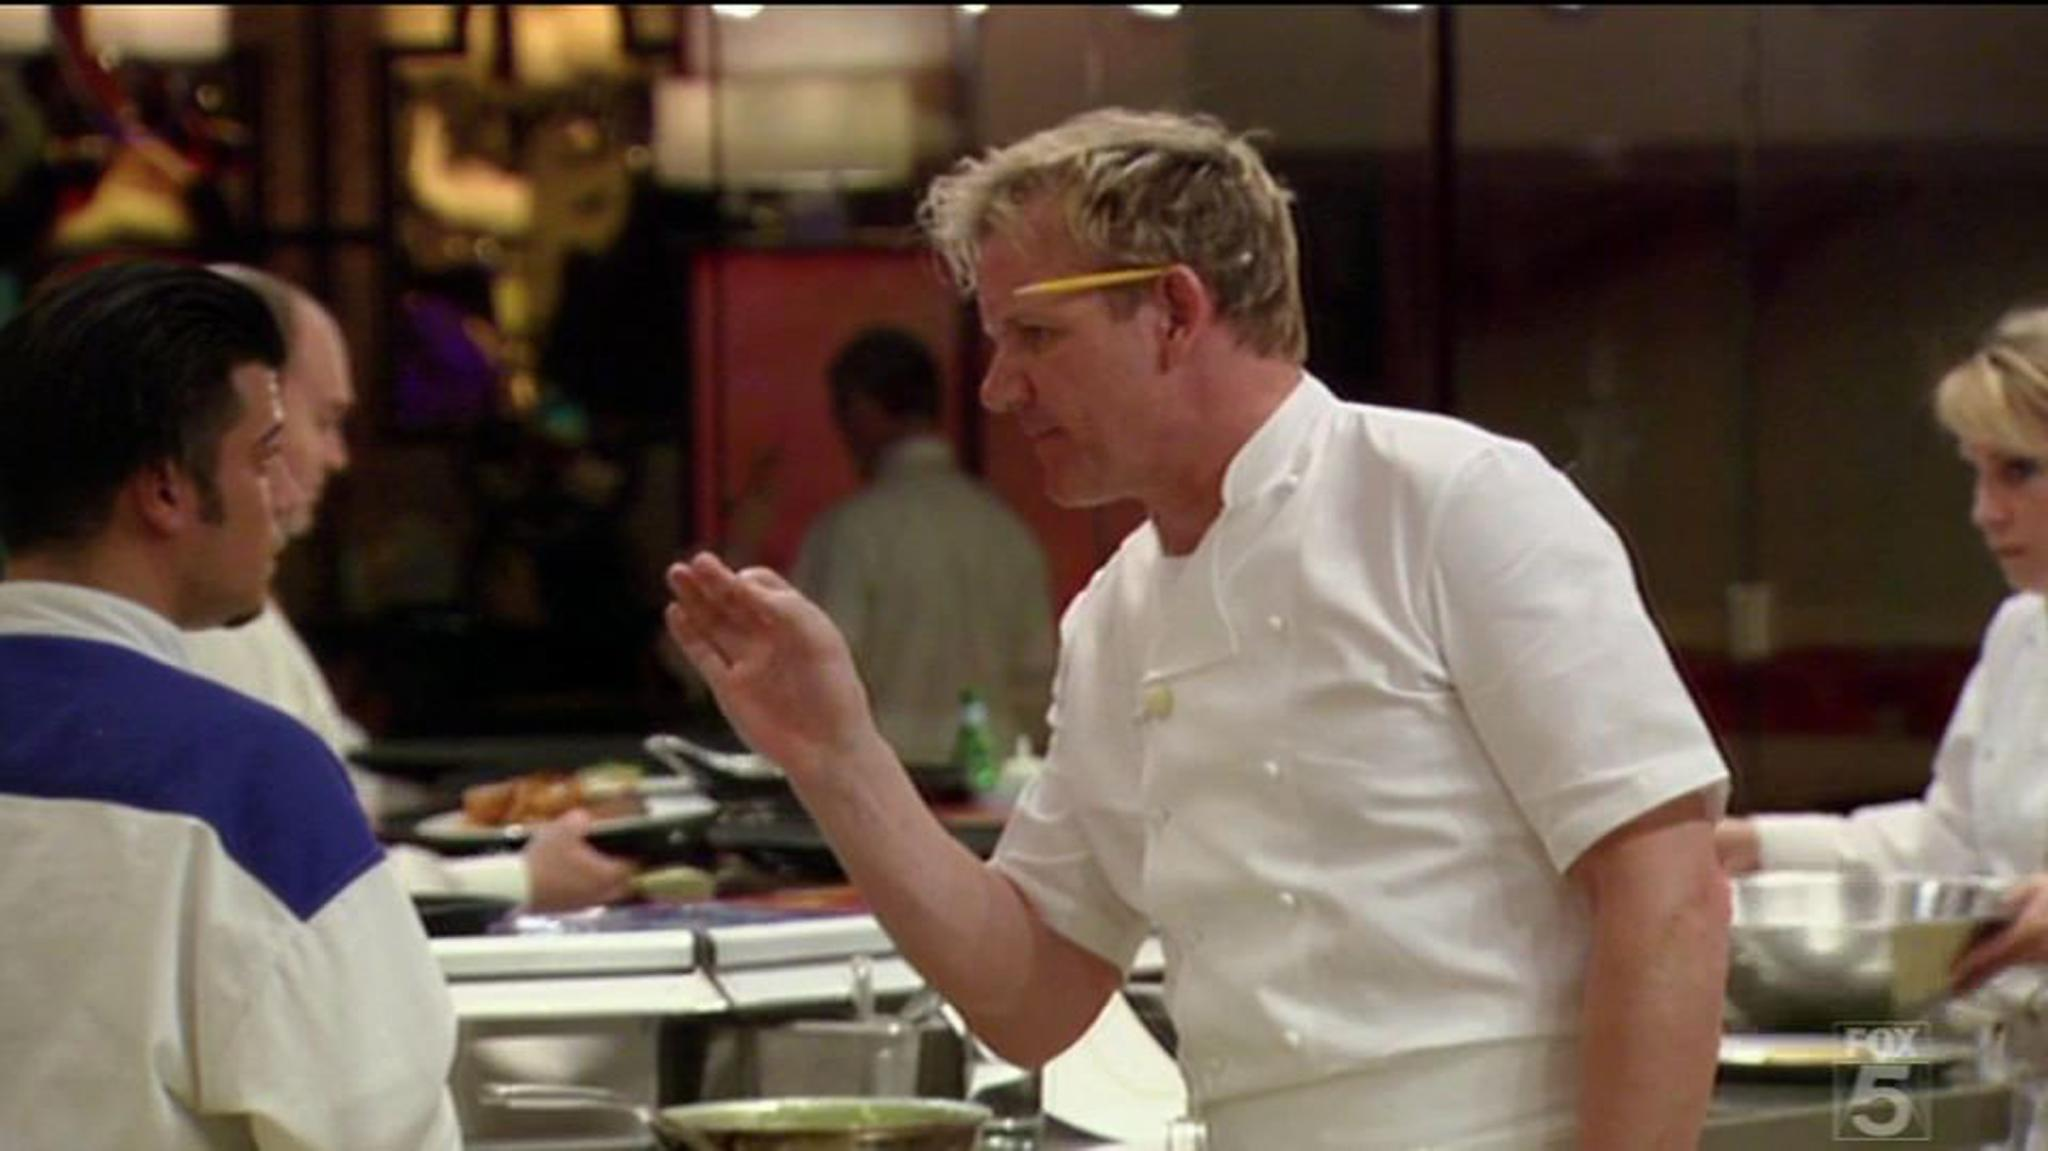 In Teufels Küche Mit Gordon Ramsay Staffel 5 Gordon Ramsay